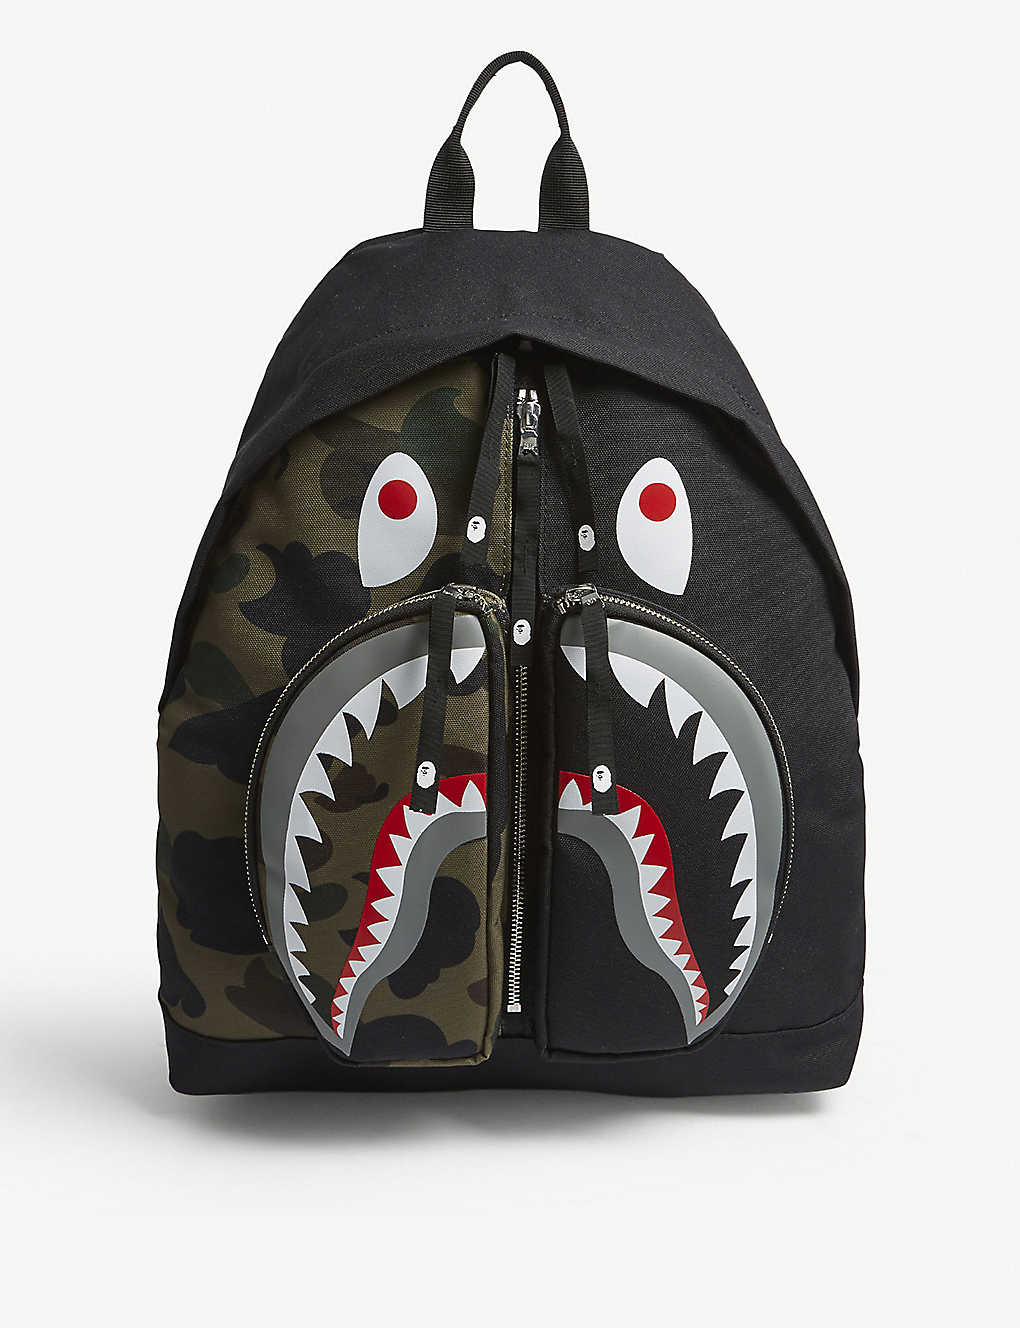 Bape Shark Backpack >> A Bathing Ape 1st Camo Shark Backpack Selfridges Com